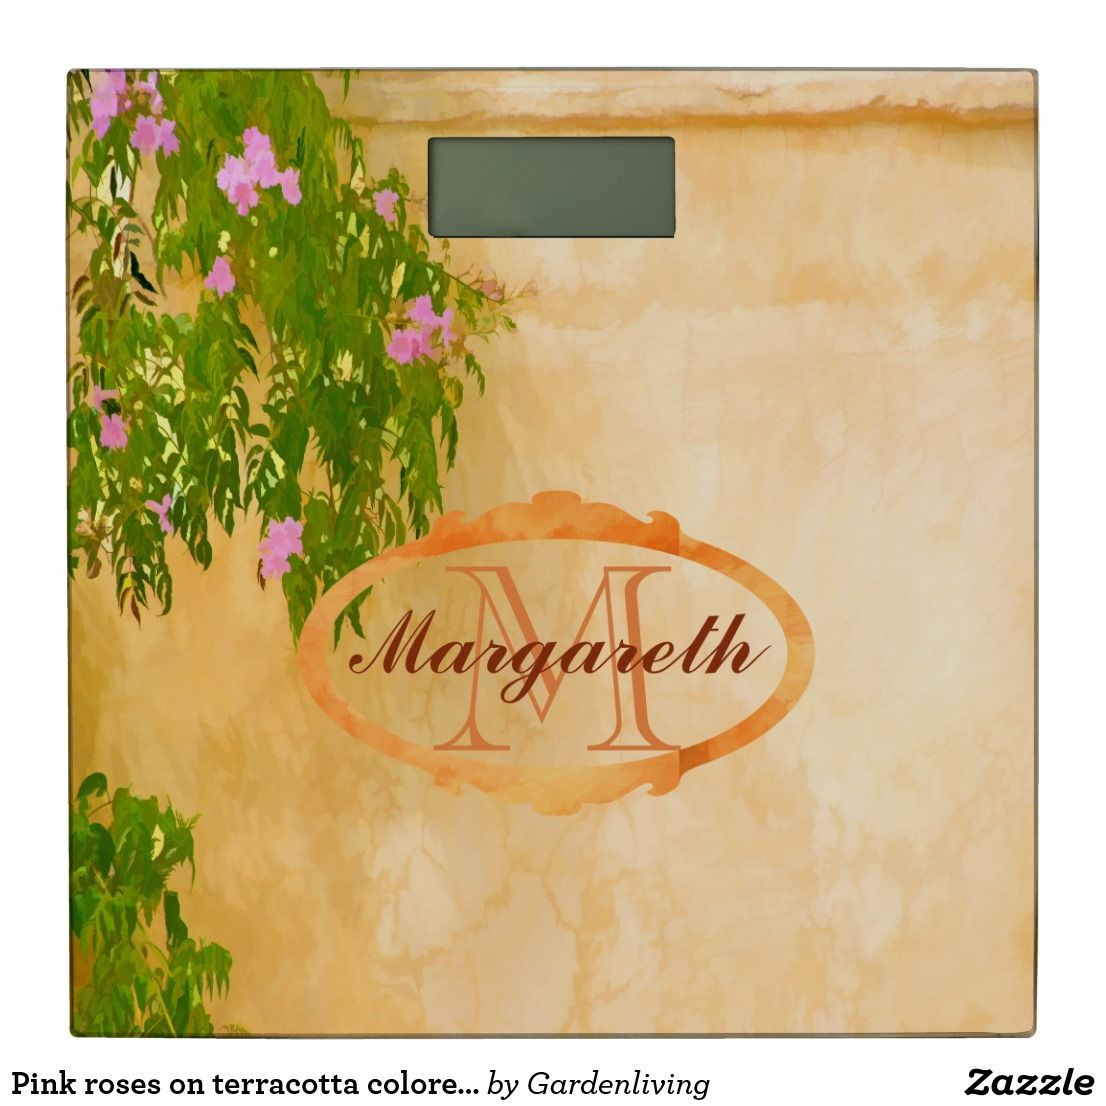 Pink roses on terracotta colored wall monogrammed bathroom scale ...